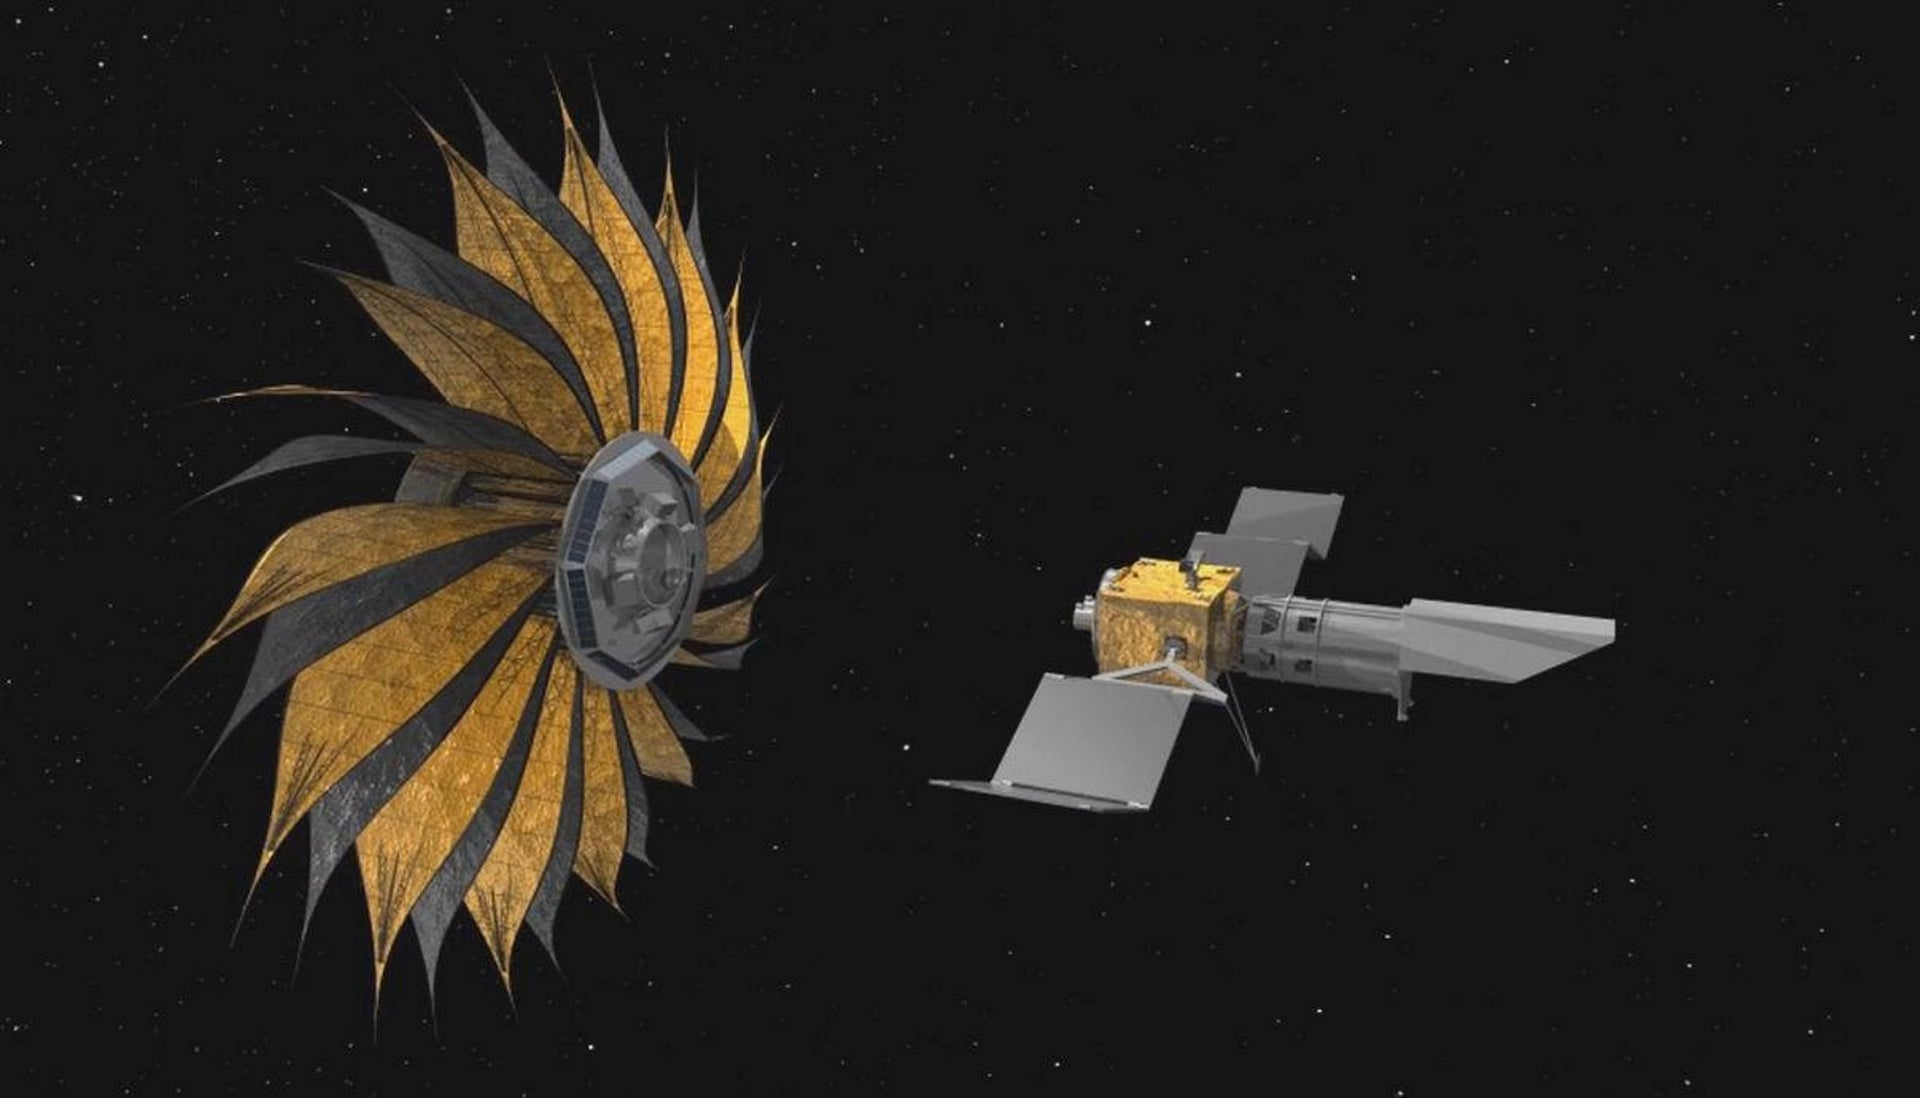 This rendering shows the proposed starshade concept flying in sync with a space telescope. The giant structure would be used to acquire images of Earth-like rocky planets around nearby stars.